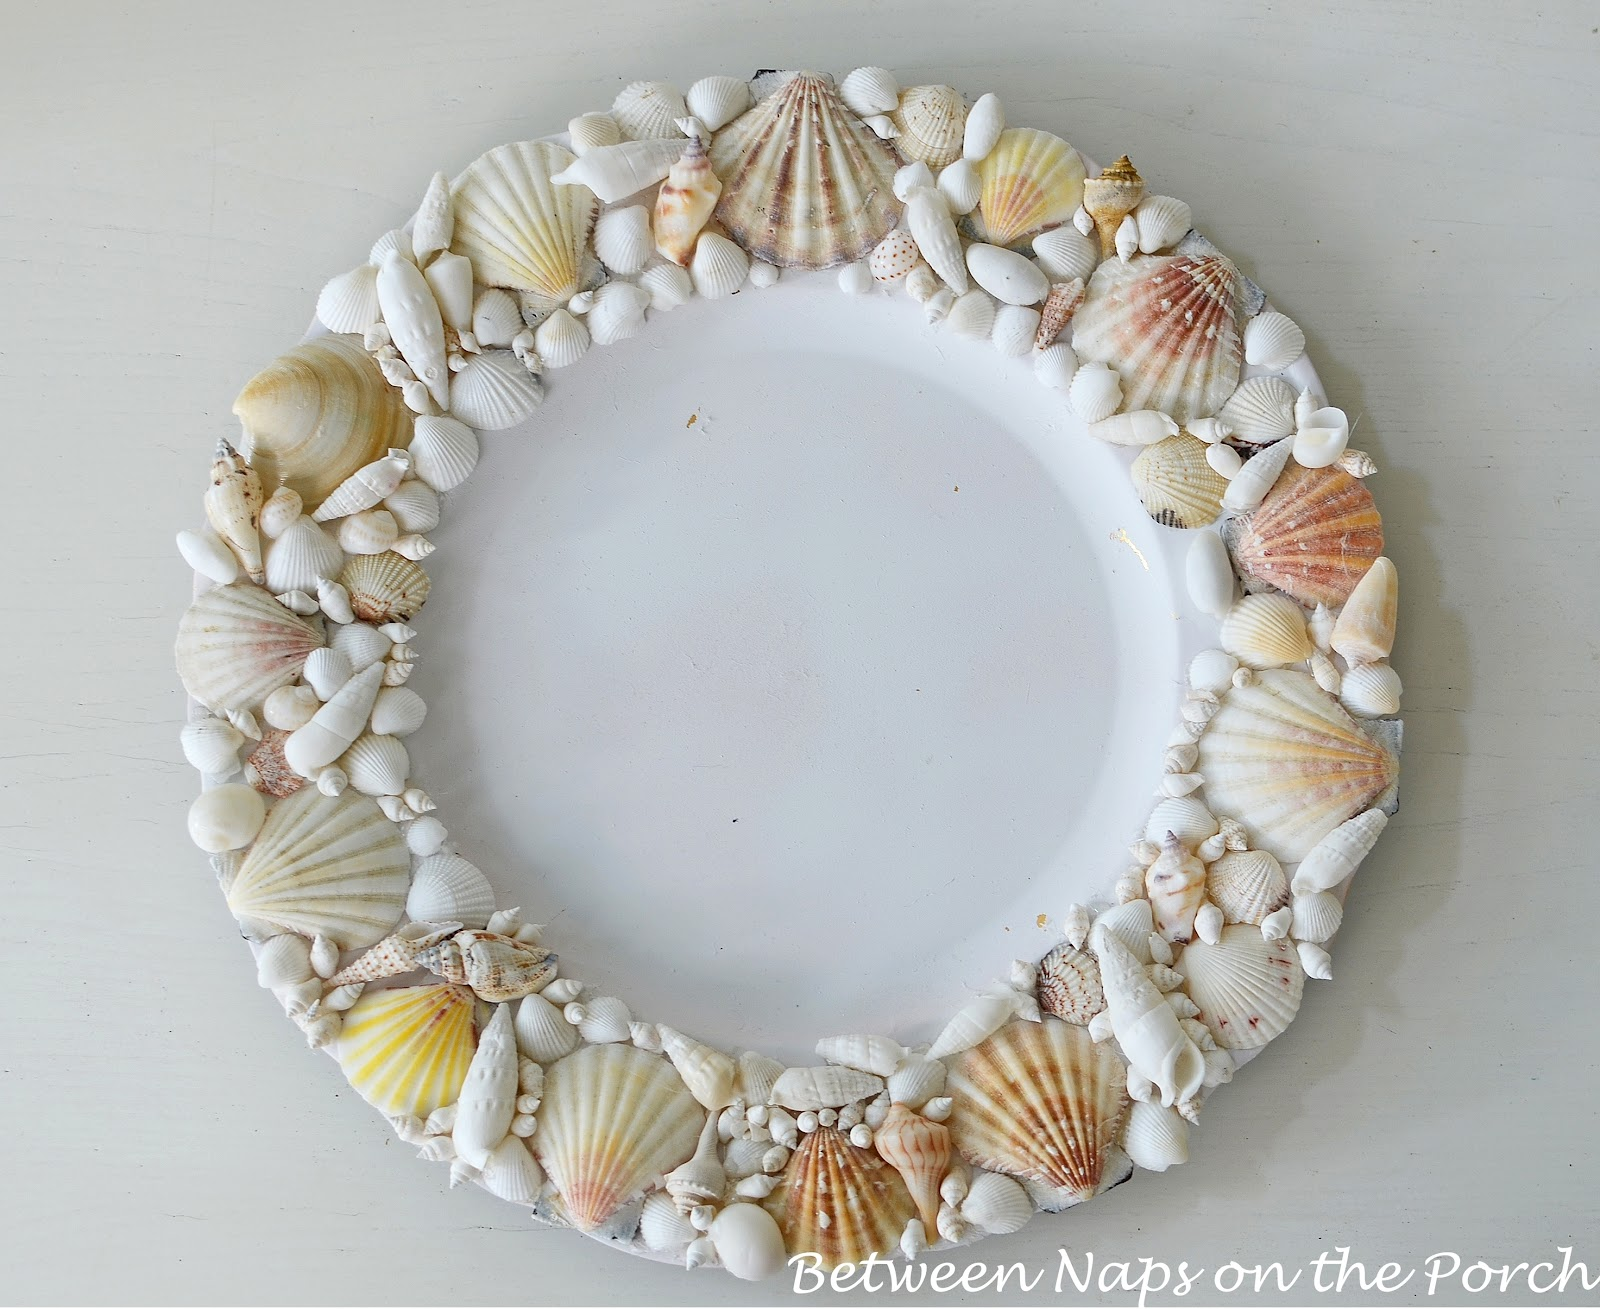 shell chair knock off tan office pottery barn chargers for a beach themed tablescape